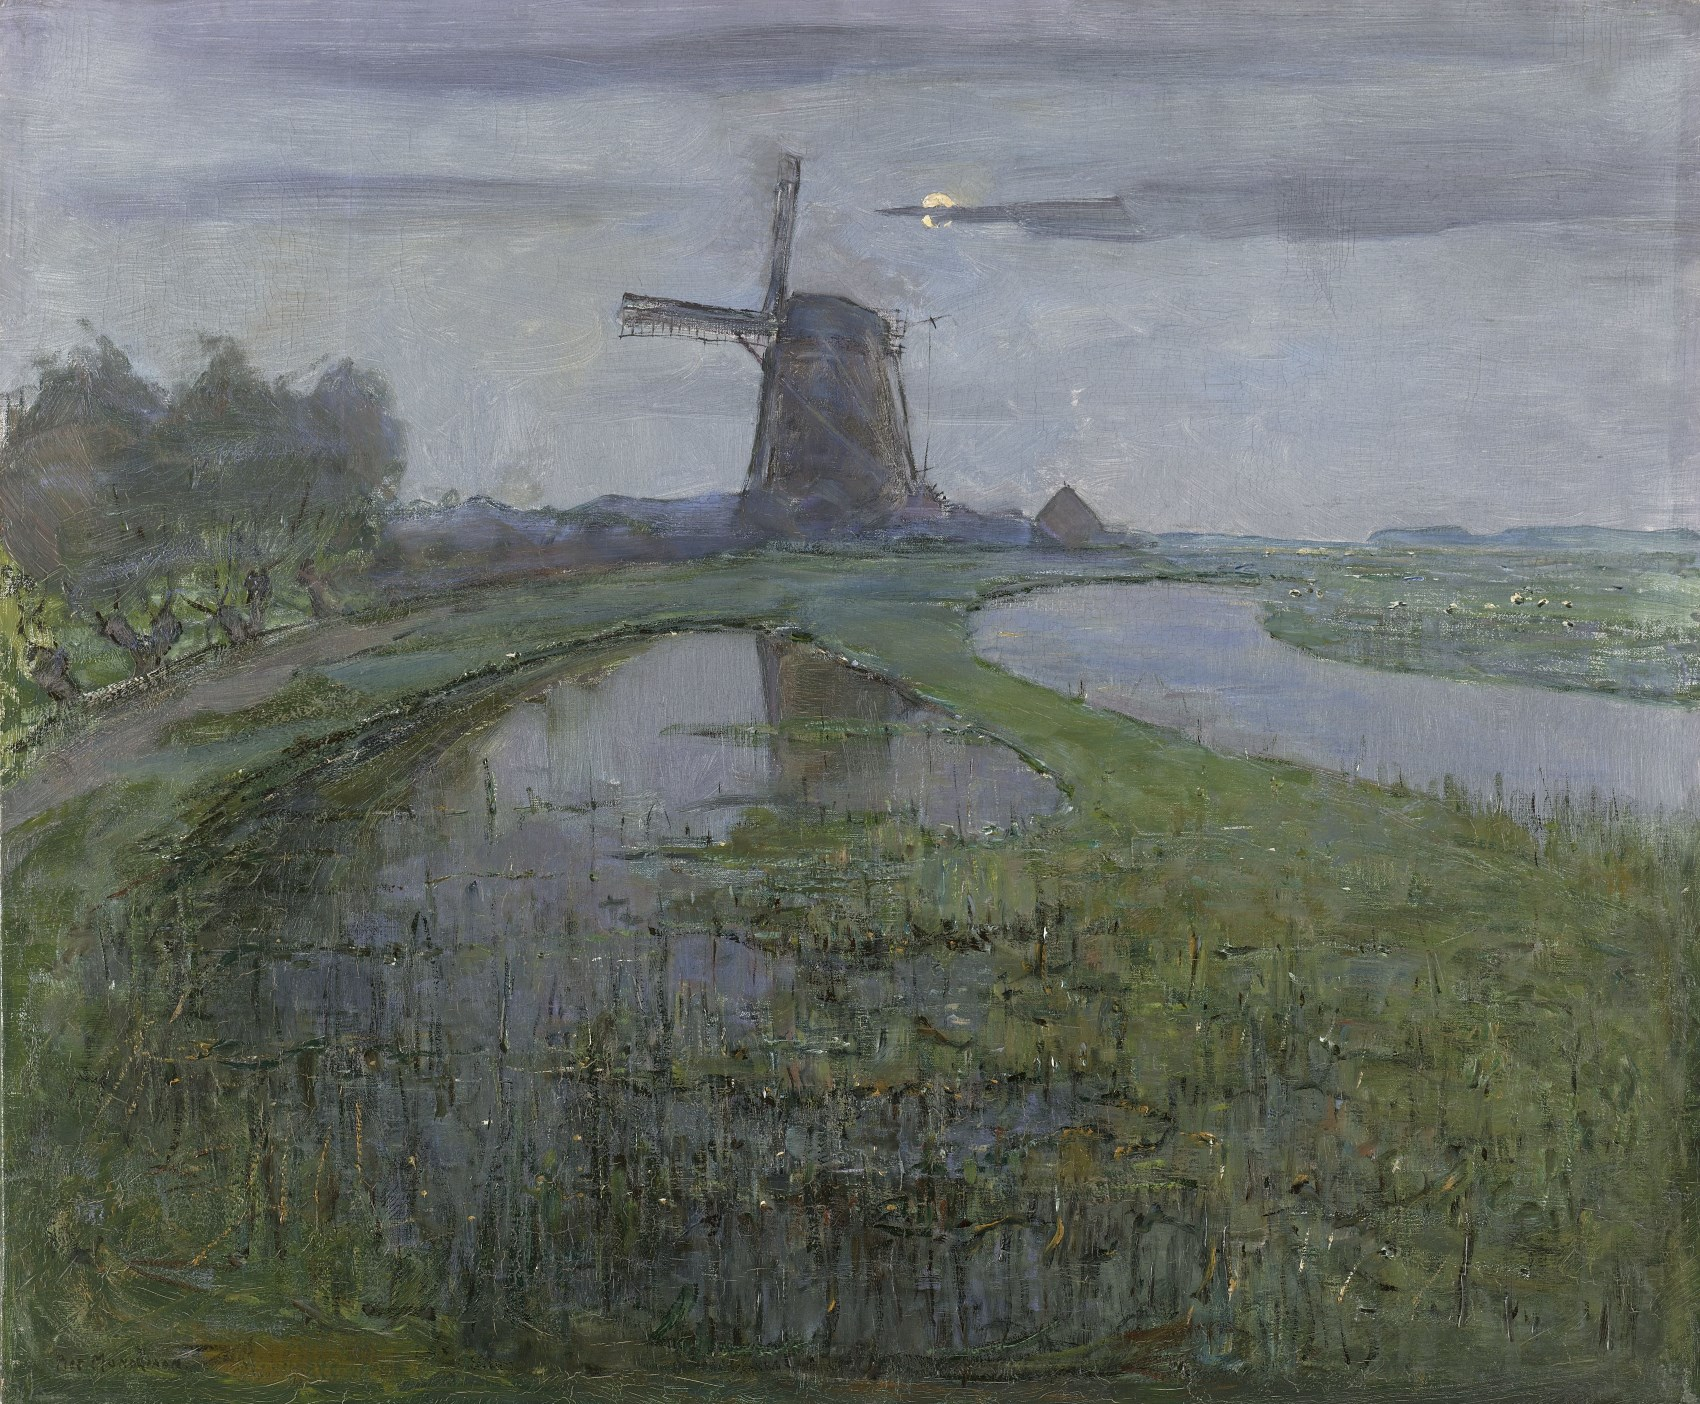 Oostzijdse mill along the river Gein by moonlight, c. 1903 (Rijksmuseum, Amsterdam)